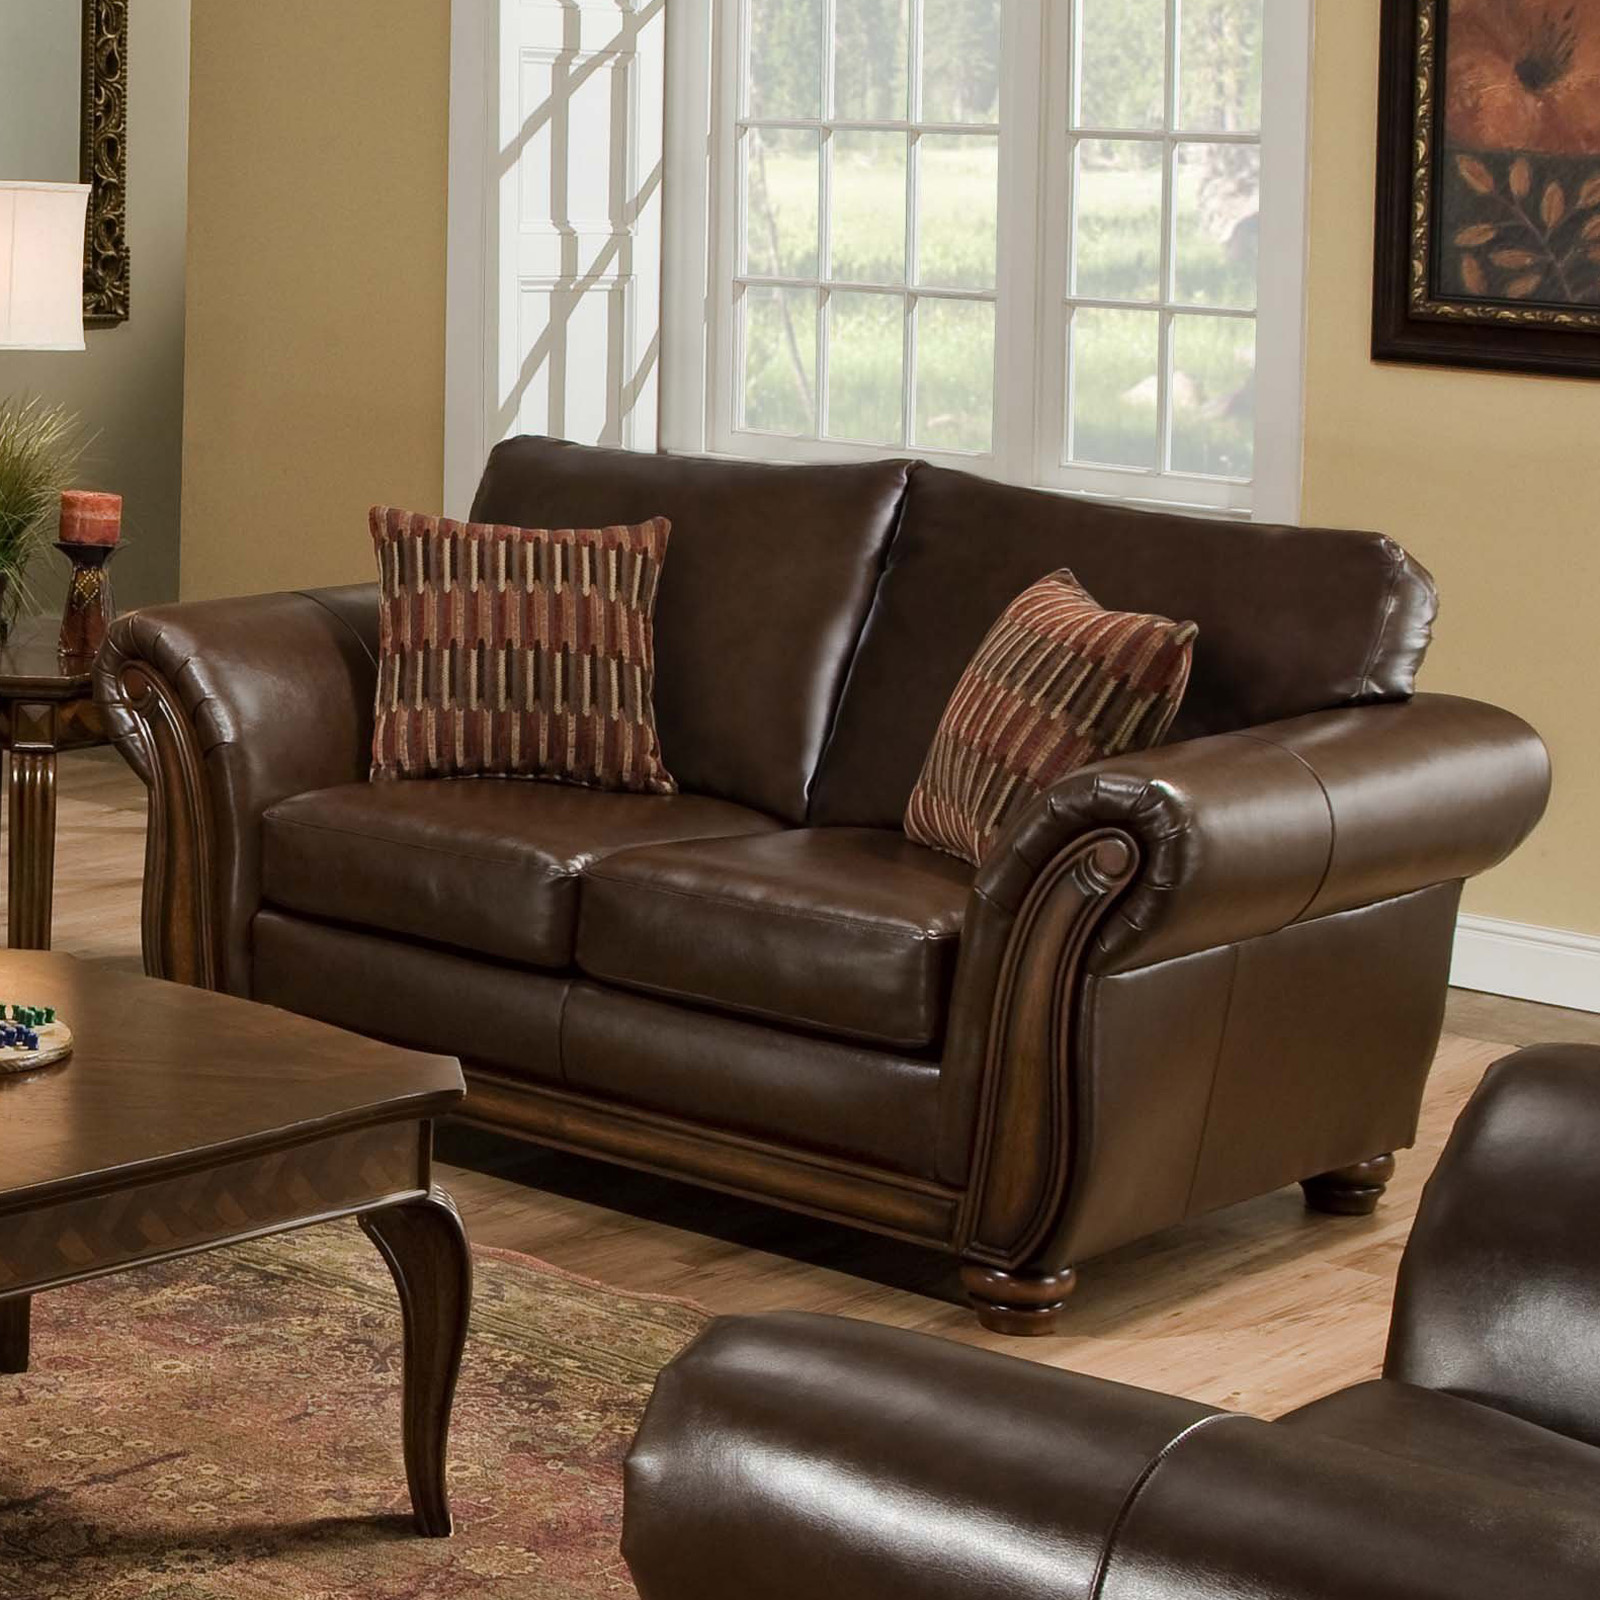 Simmons Leather Sofa And Loveseat Nail Panama Espresso Sofa And Loveseat By Simmons The Best